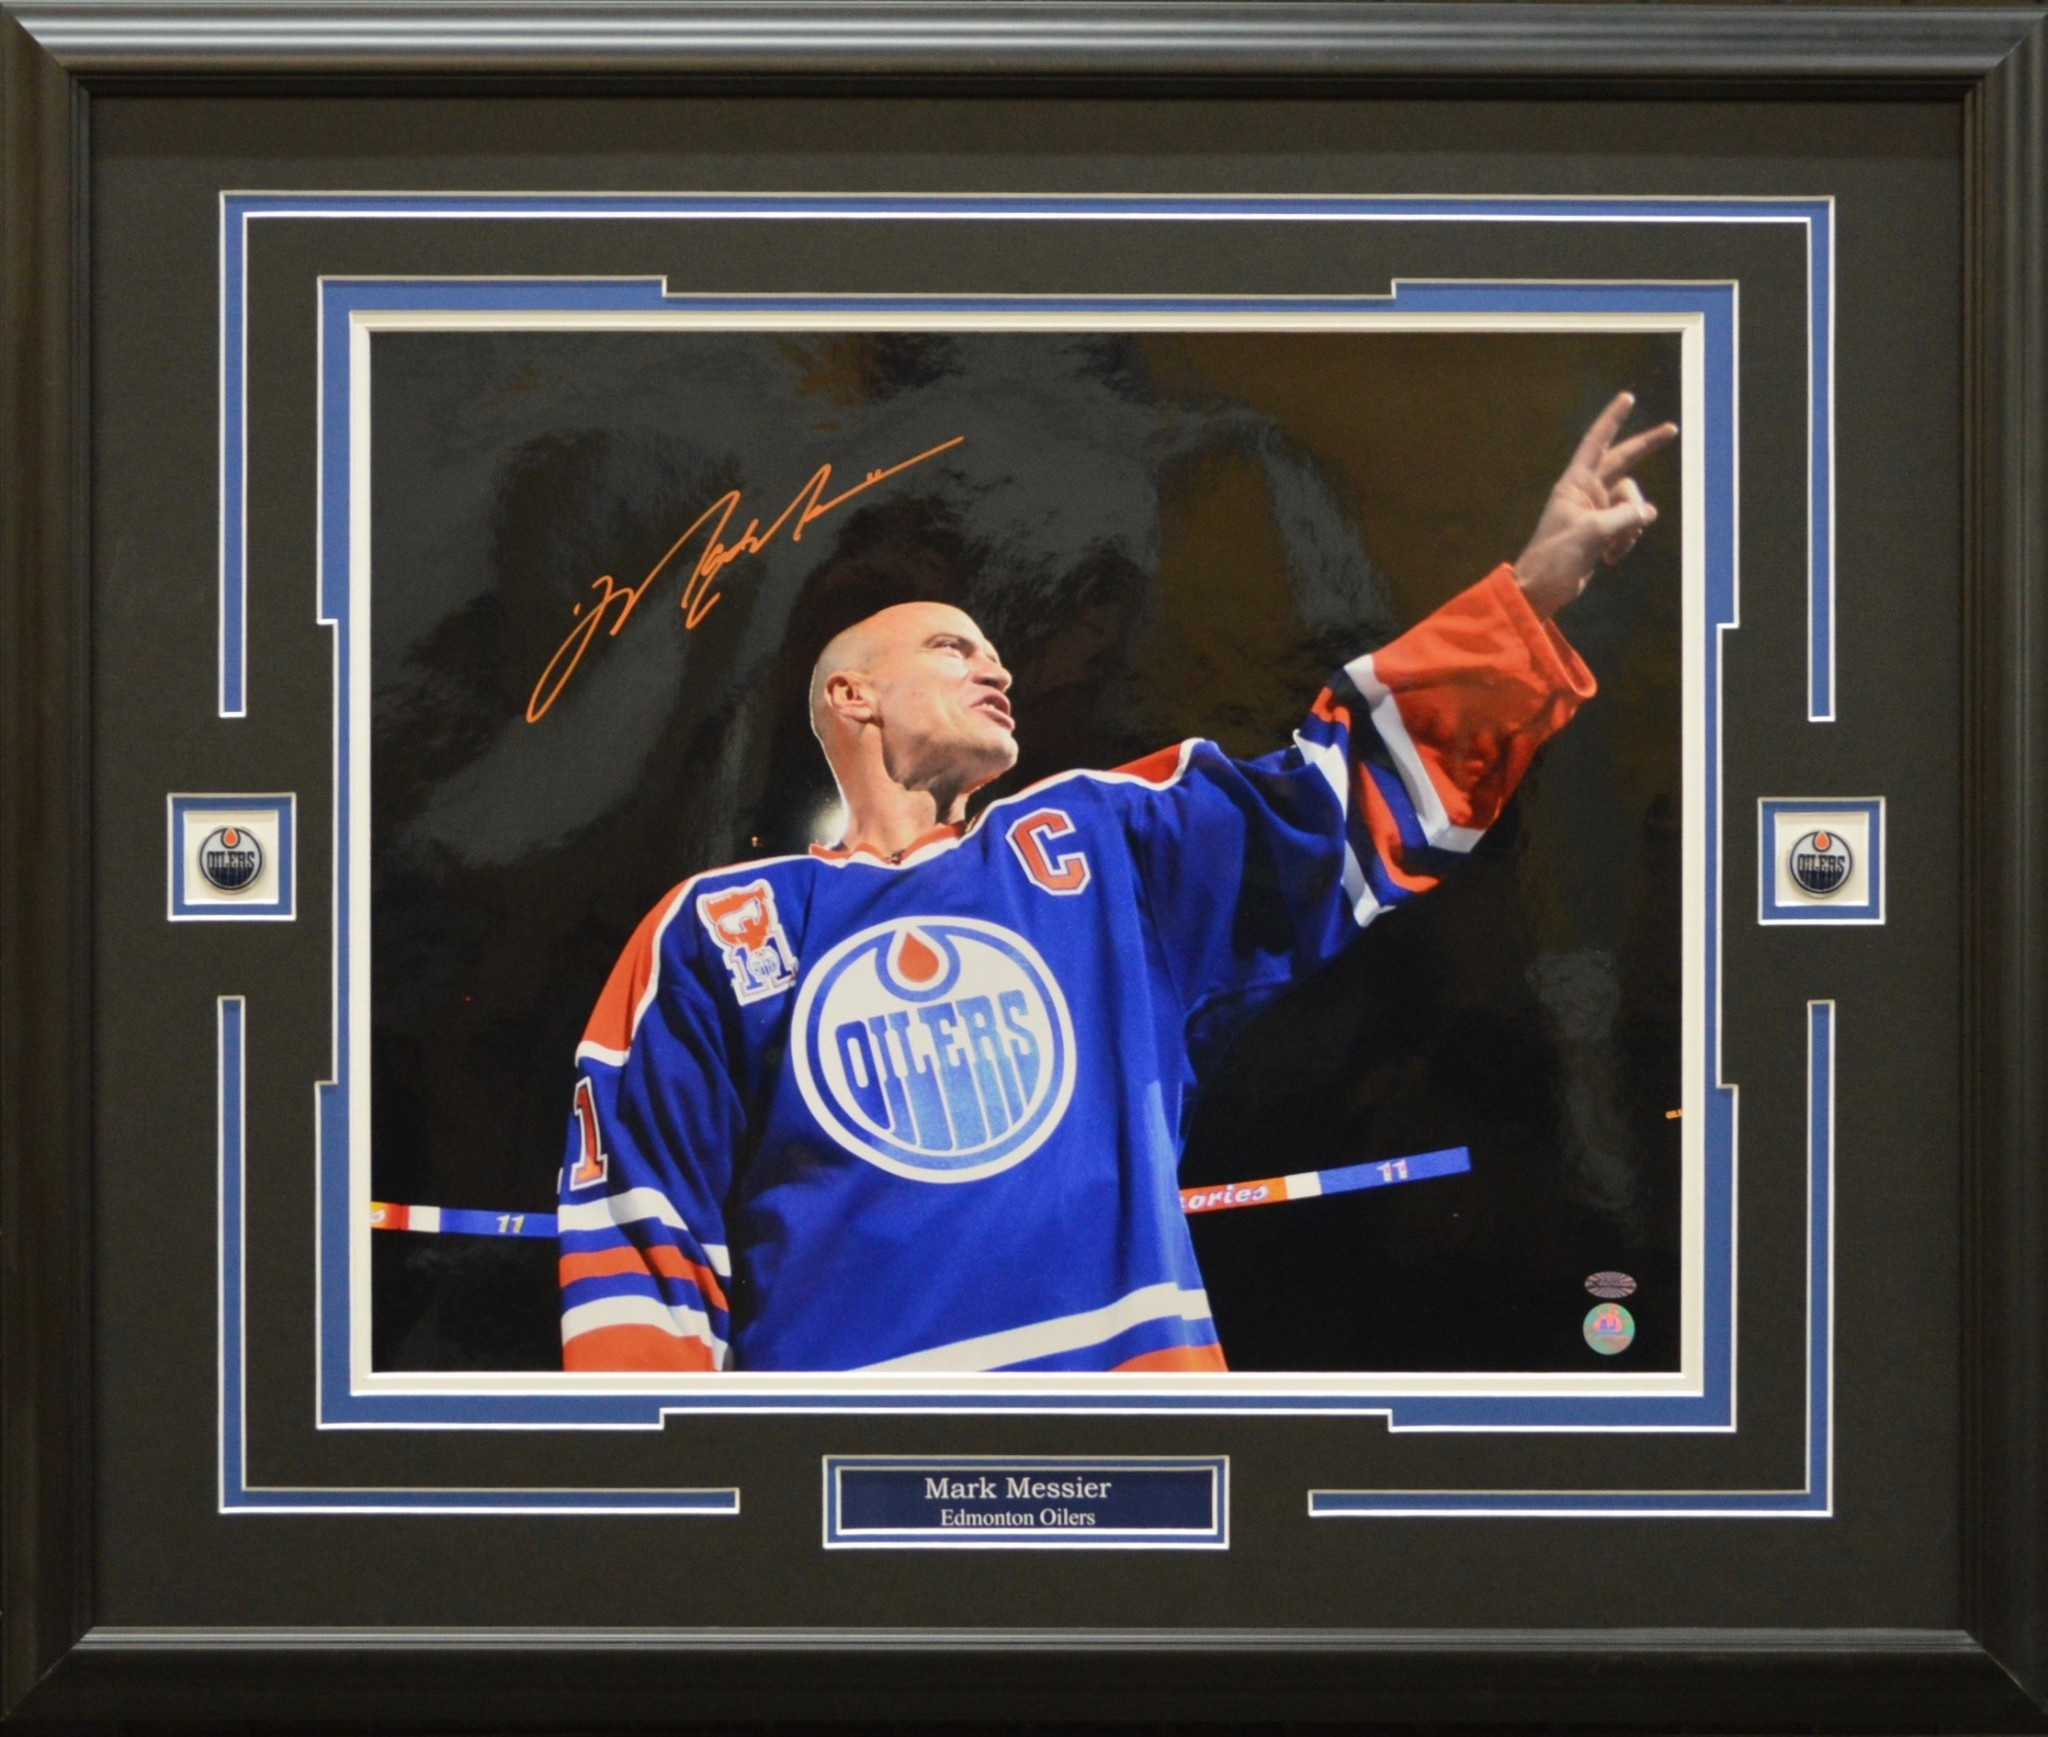 MARK MESSIER AUTOGRAPH 16X20 PHOTO 23X28 FRAME - EDMONTON OILERS